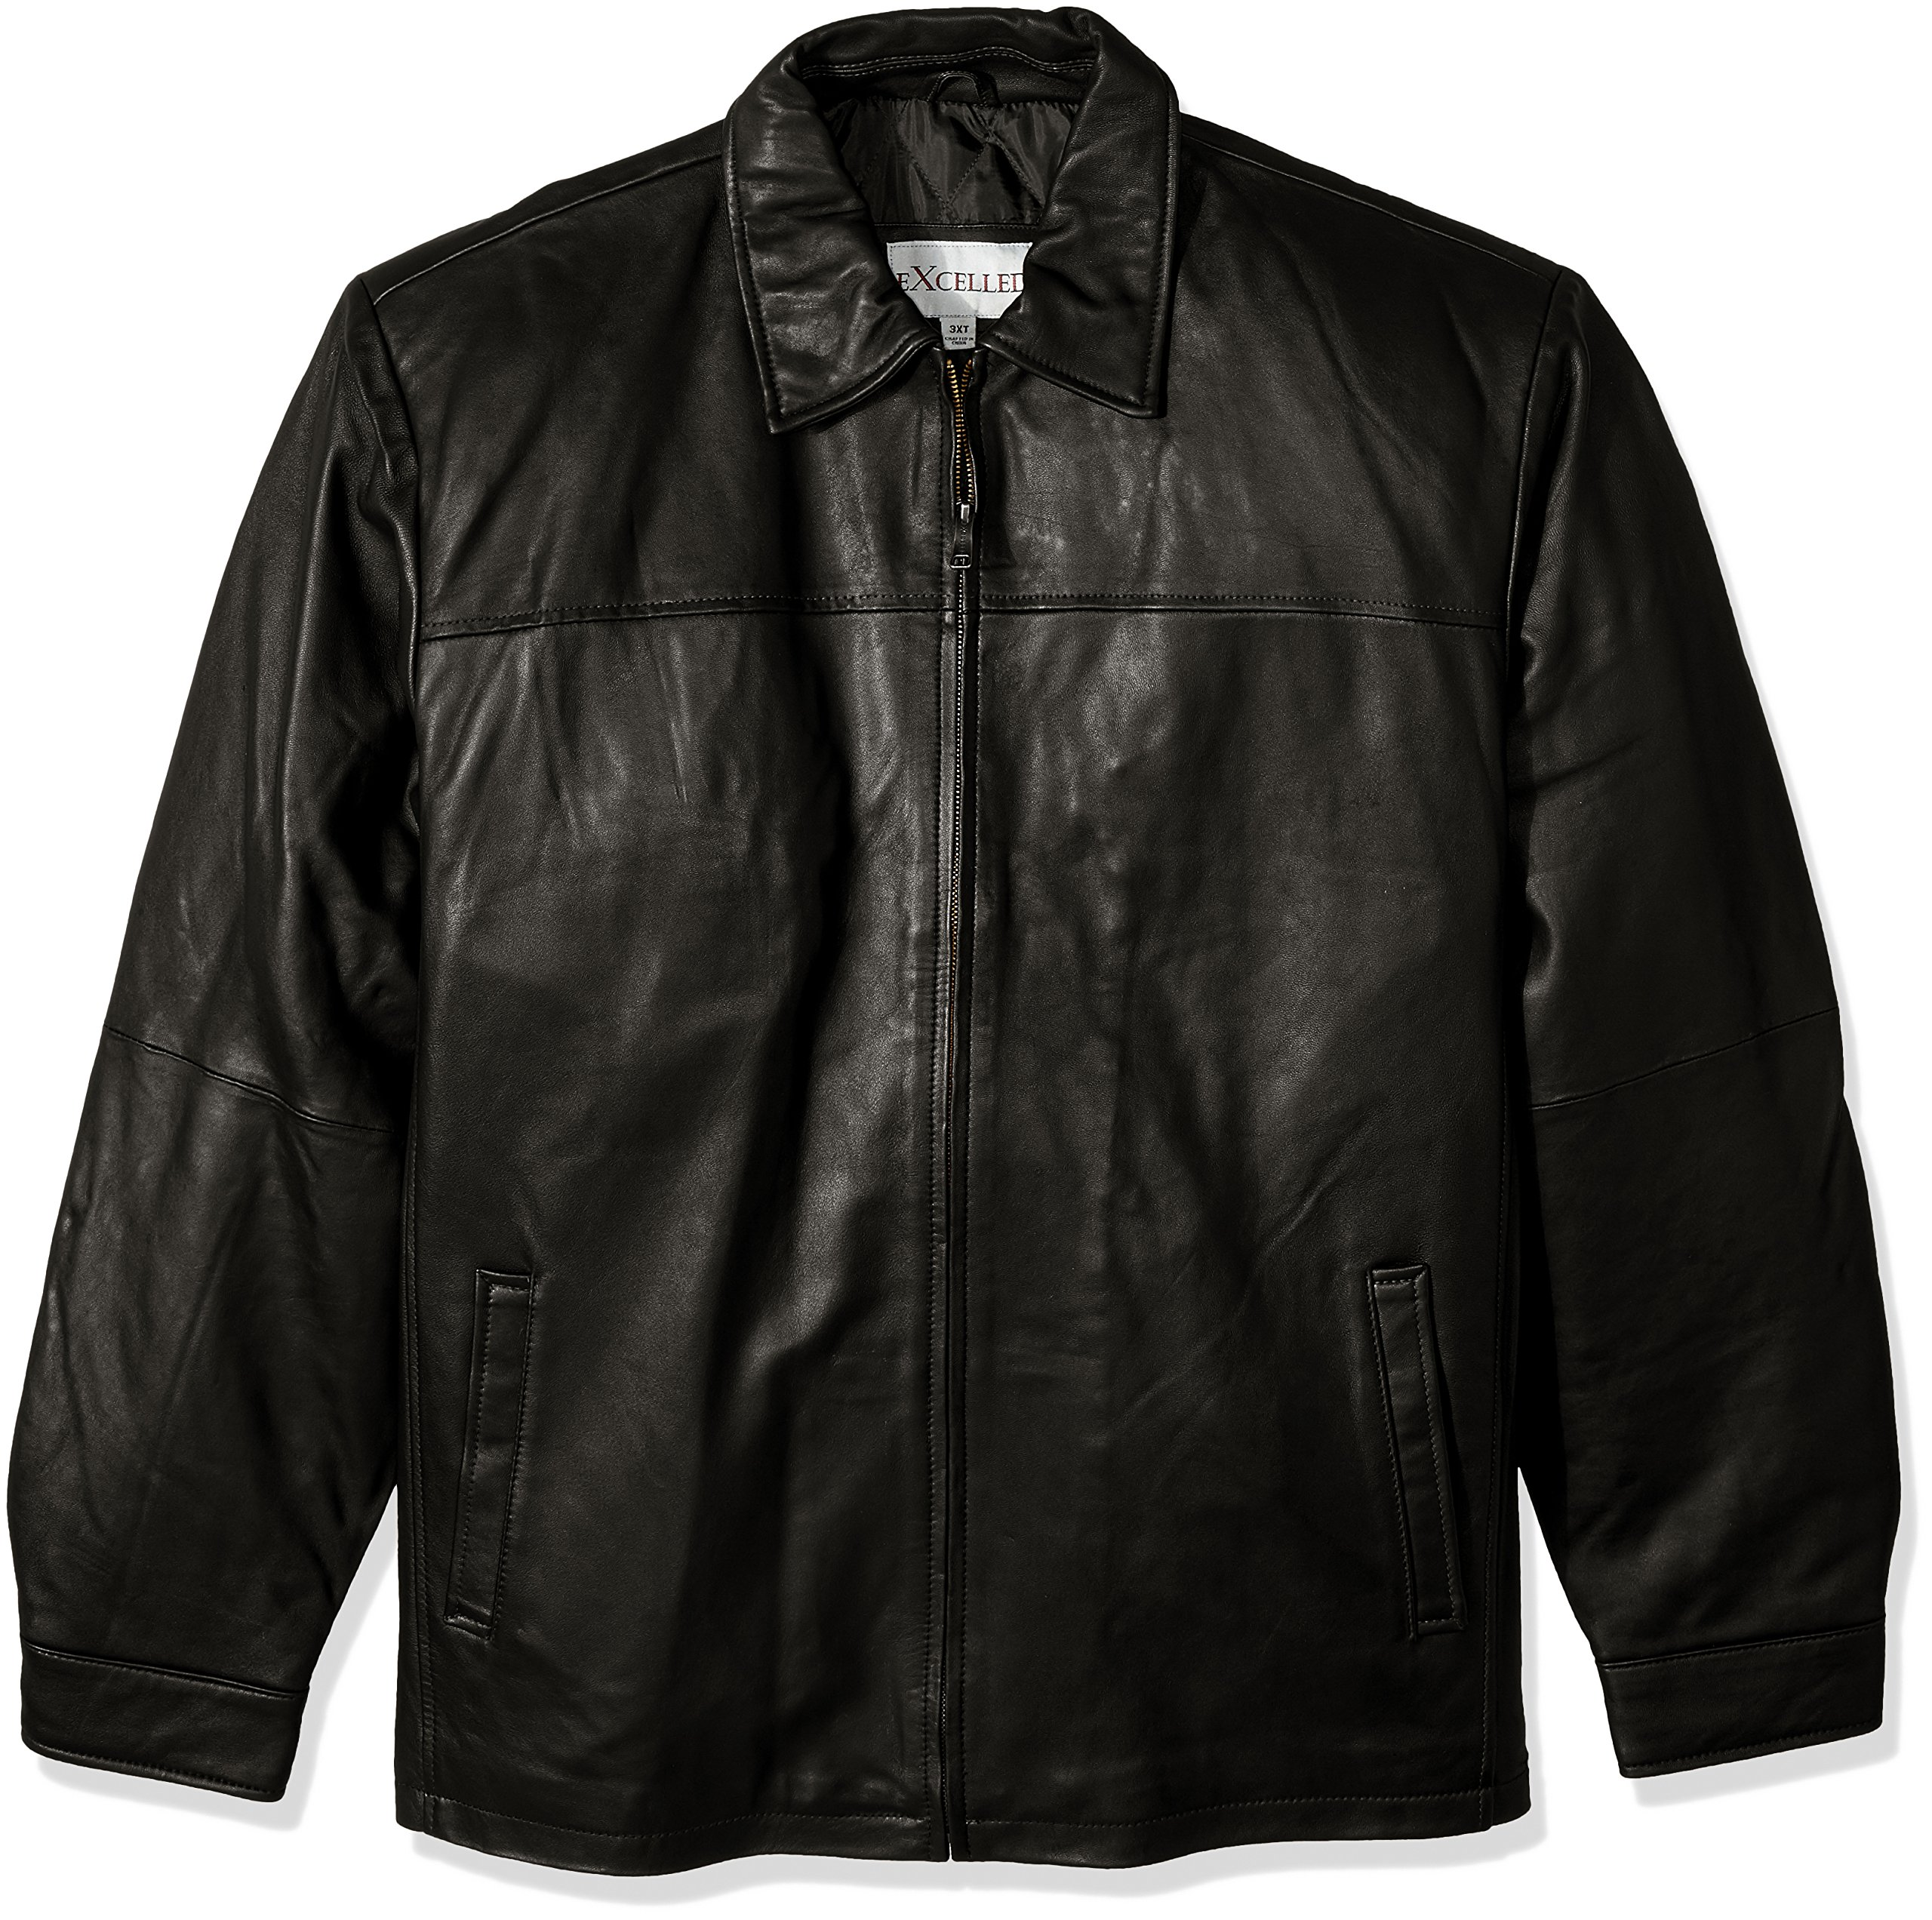 Excelled Men's Big and Tall New Zealand Lambskin Leather Classic Open Bottom Jacket, Black, 2XLT